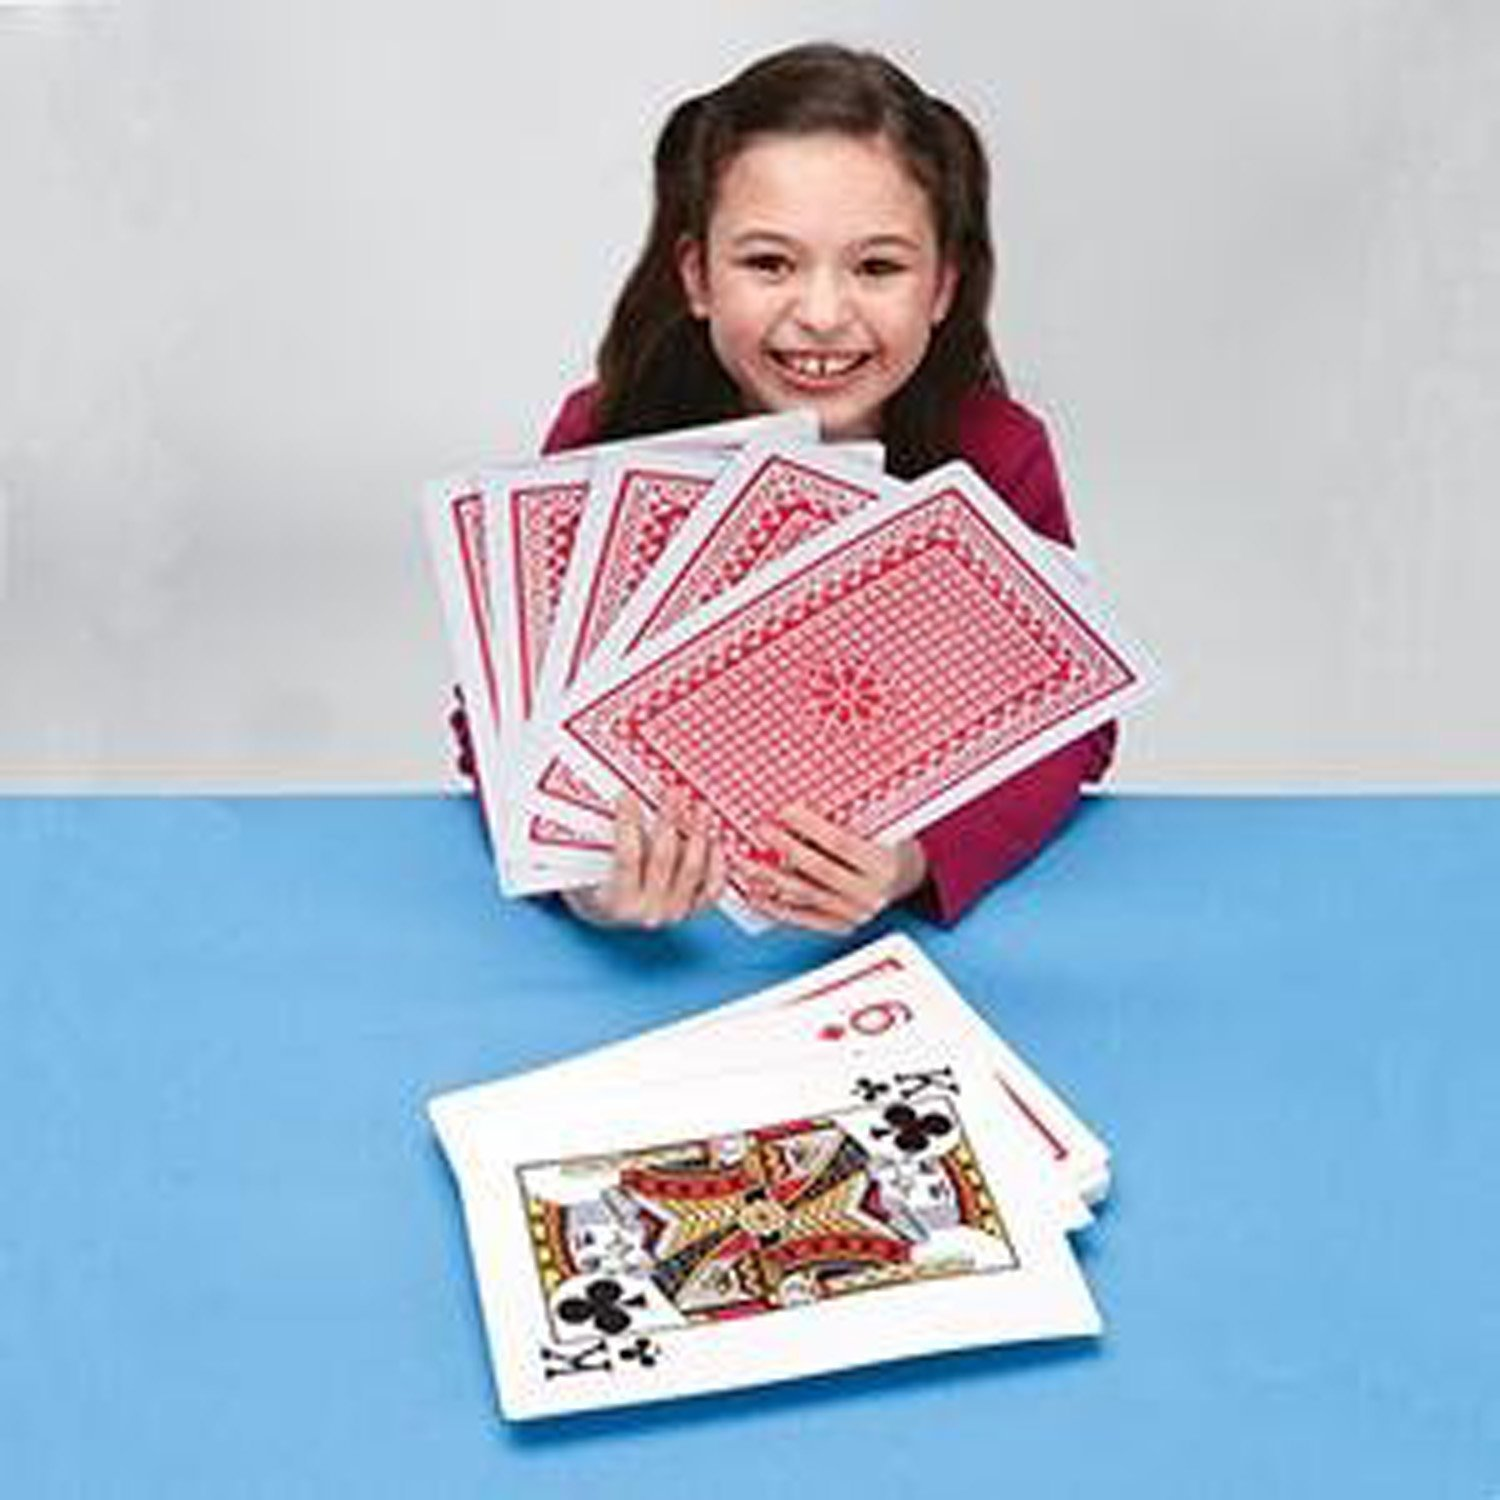 Jumbo Playing Cards 8 X 12 Inch Giant Size And Print New